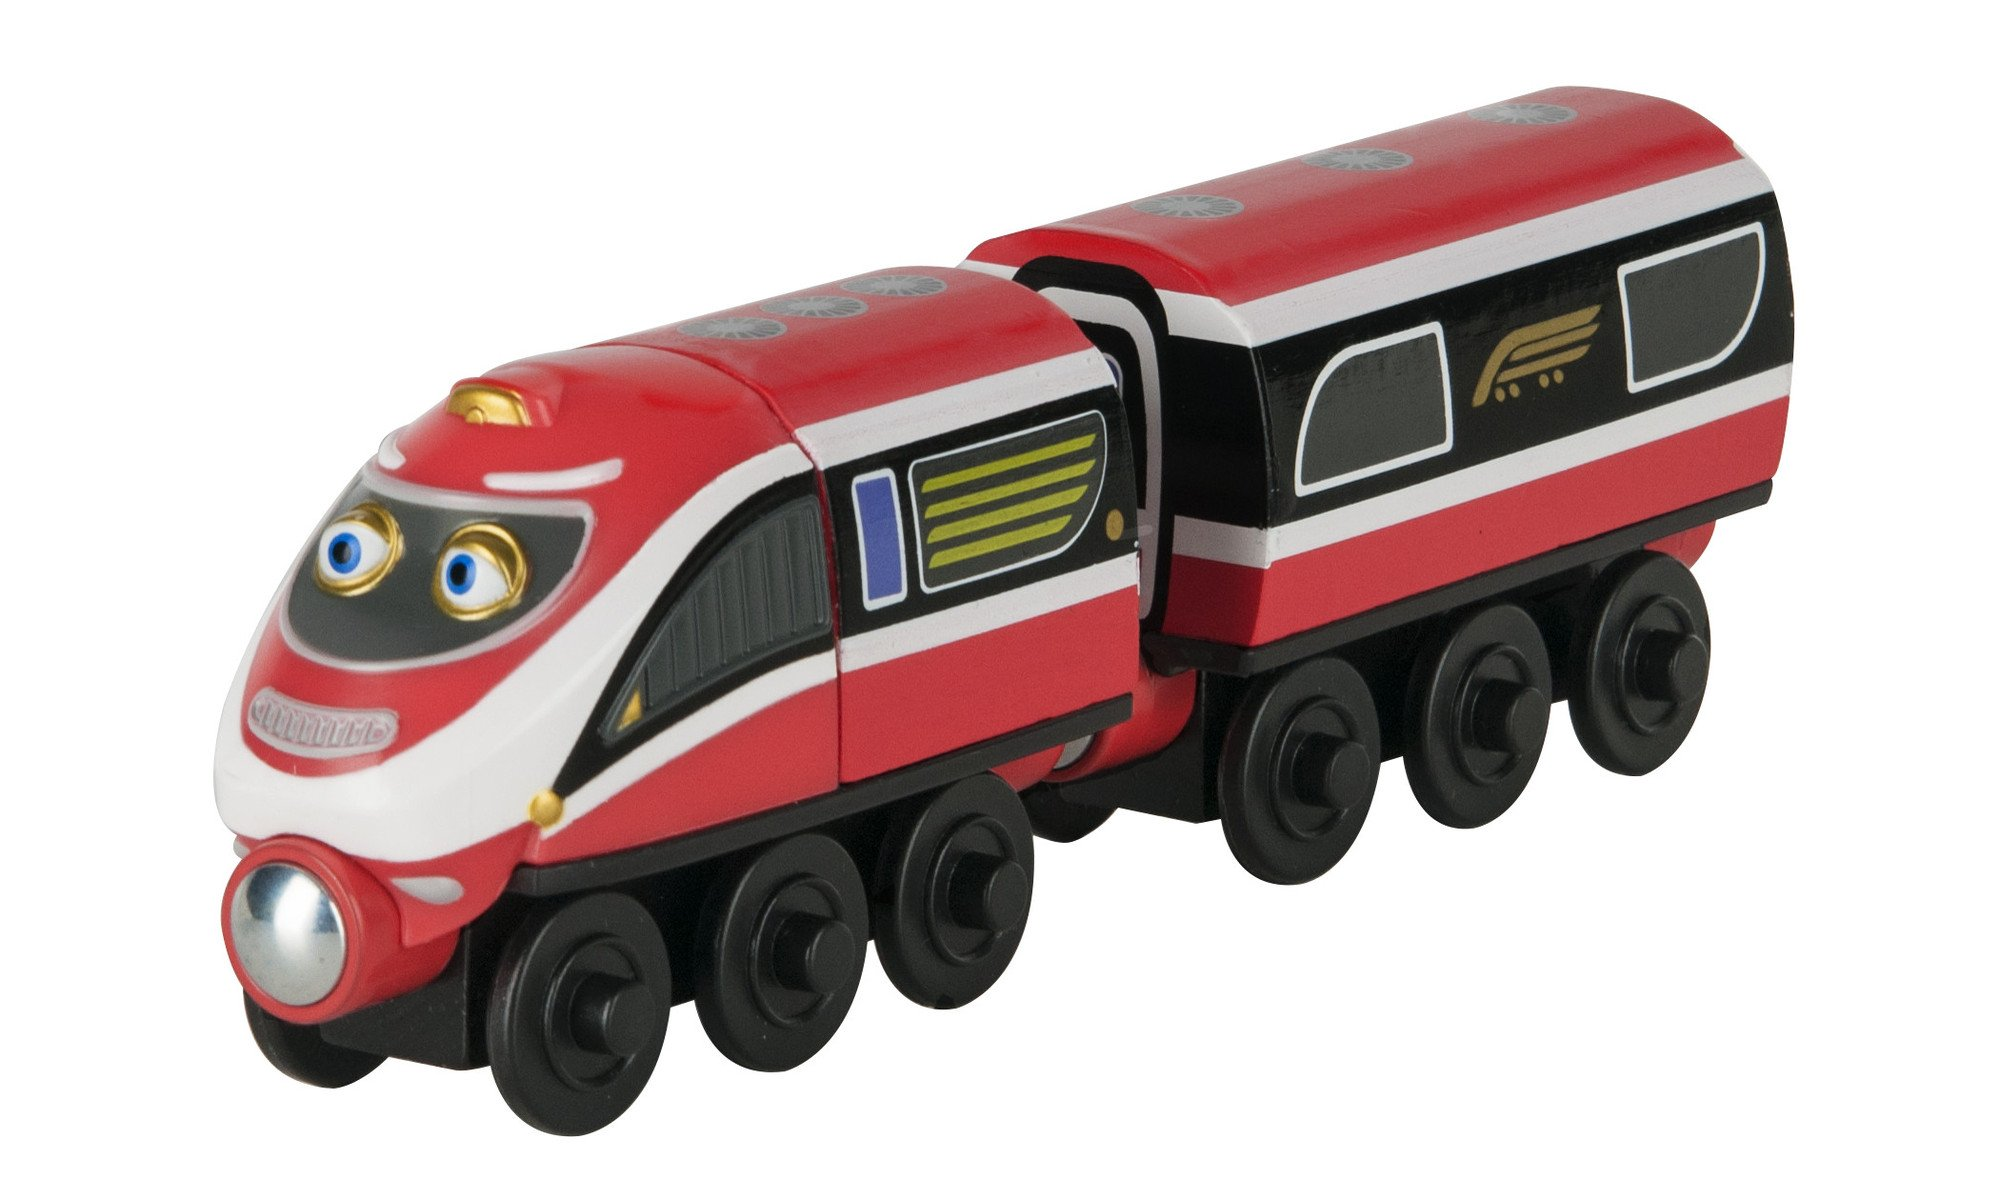 TOMY Chuggington Wooden Railway Daley And Delivery Wagon